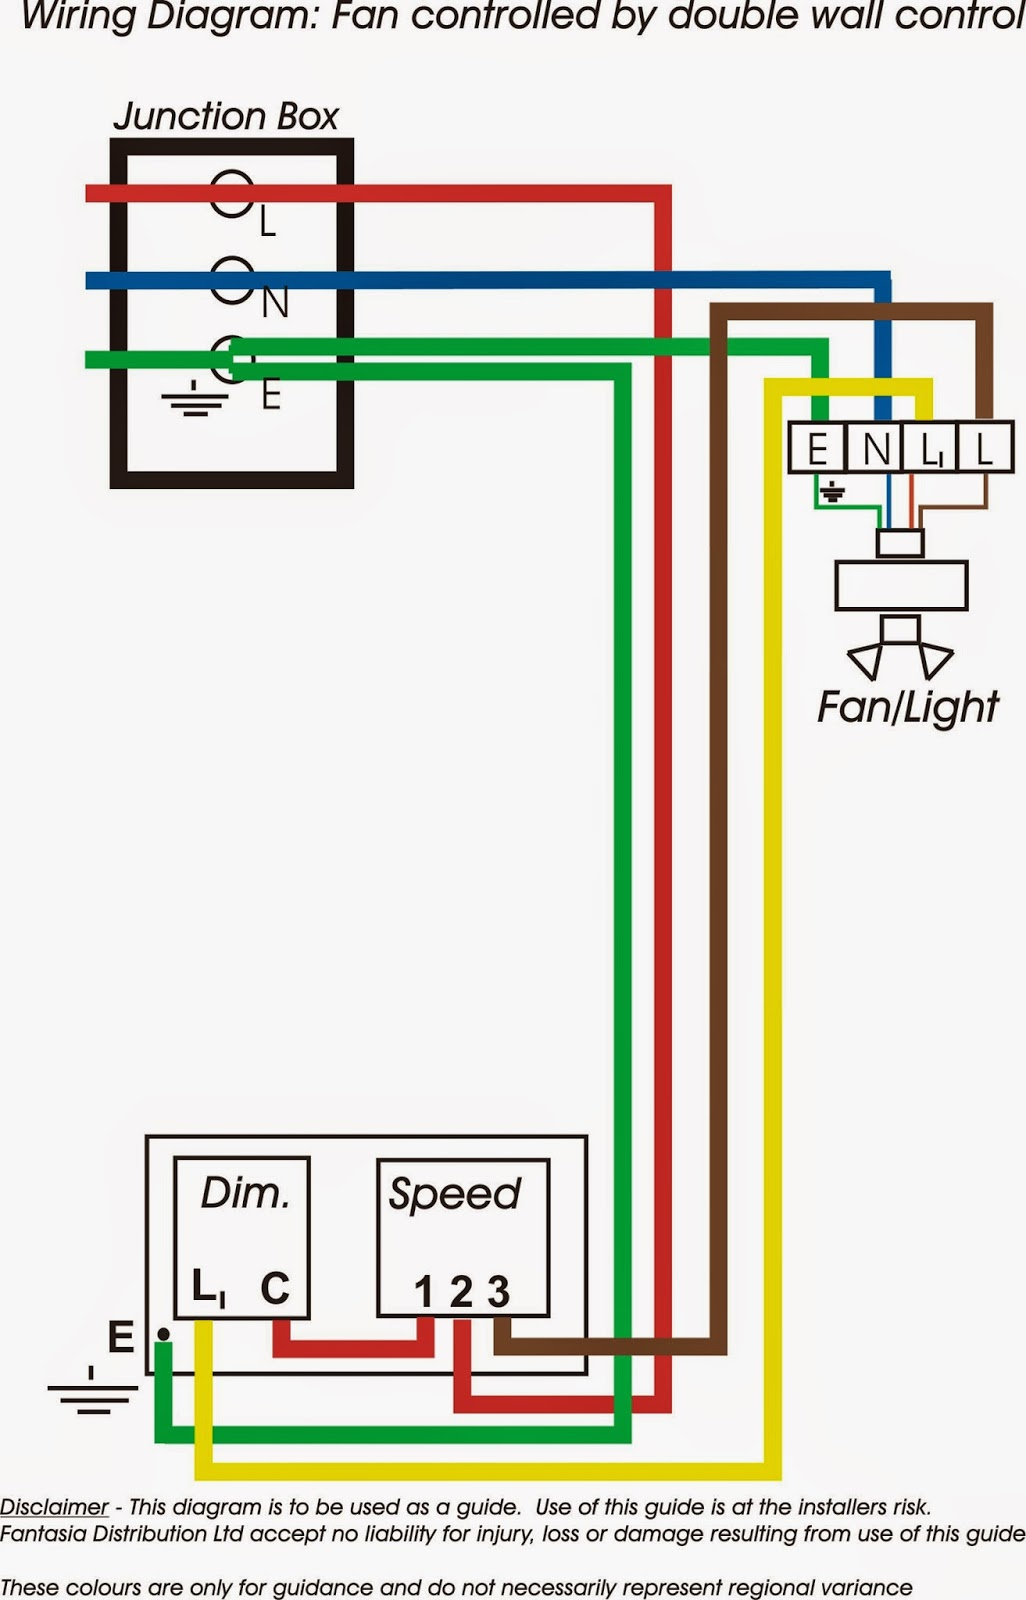 wiring diagram wall control electric work wiring diagram Arctic Cat Wiring Diagrams Online at crackthecode.co